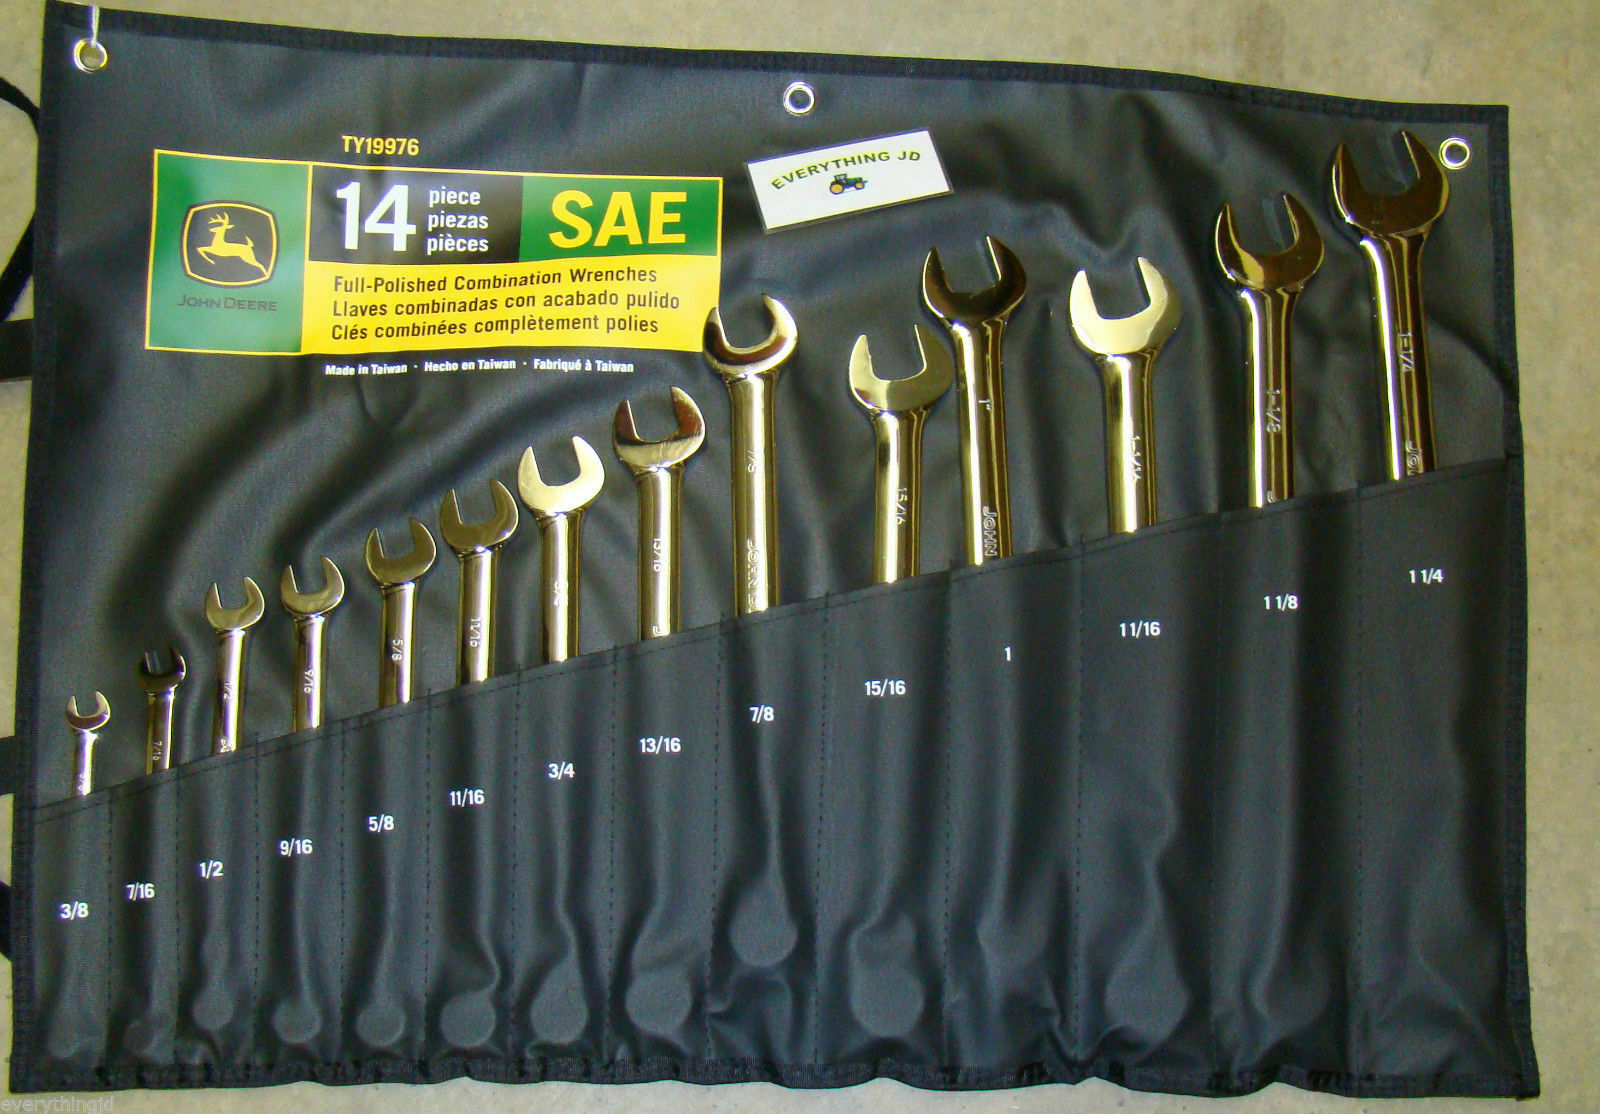 John Deere SAE Full-Polished Combination Wrench Set (14 piece set) - TY19976. Buy it now for 156.57